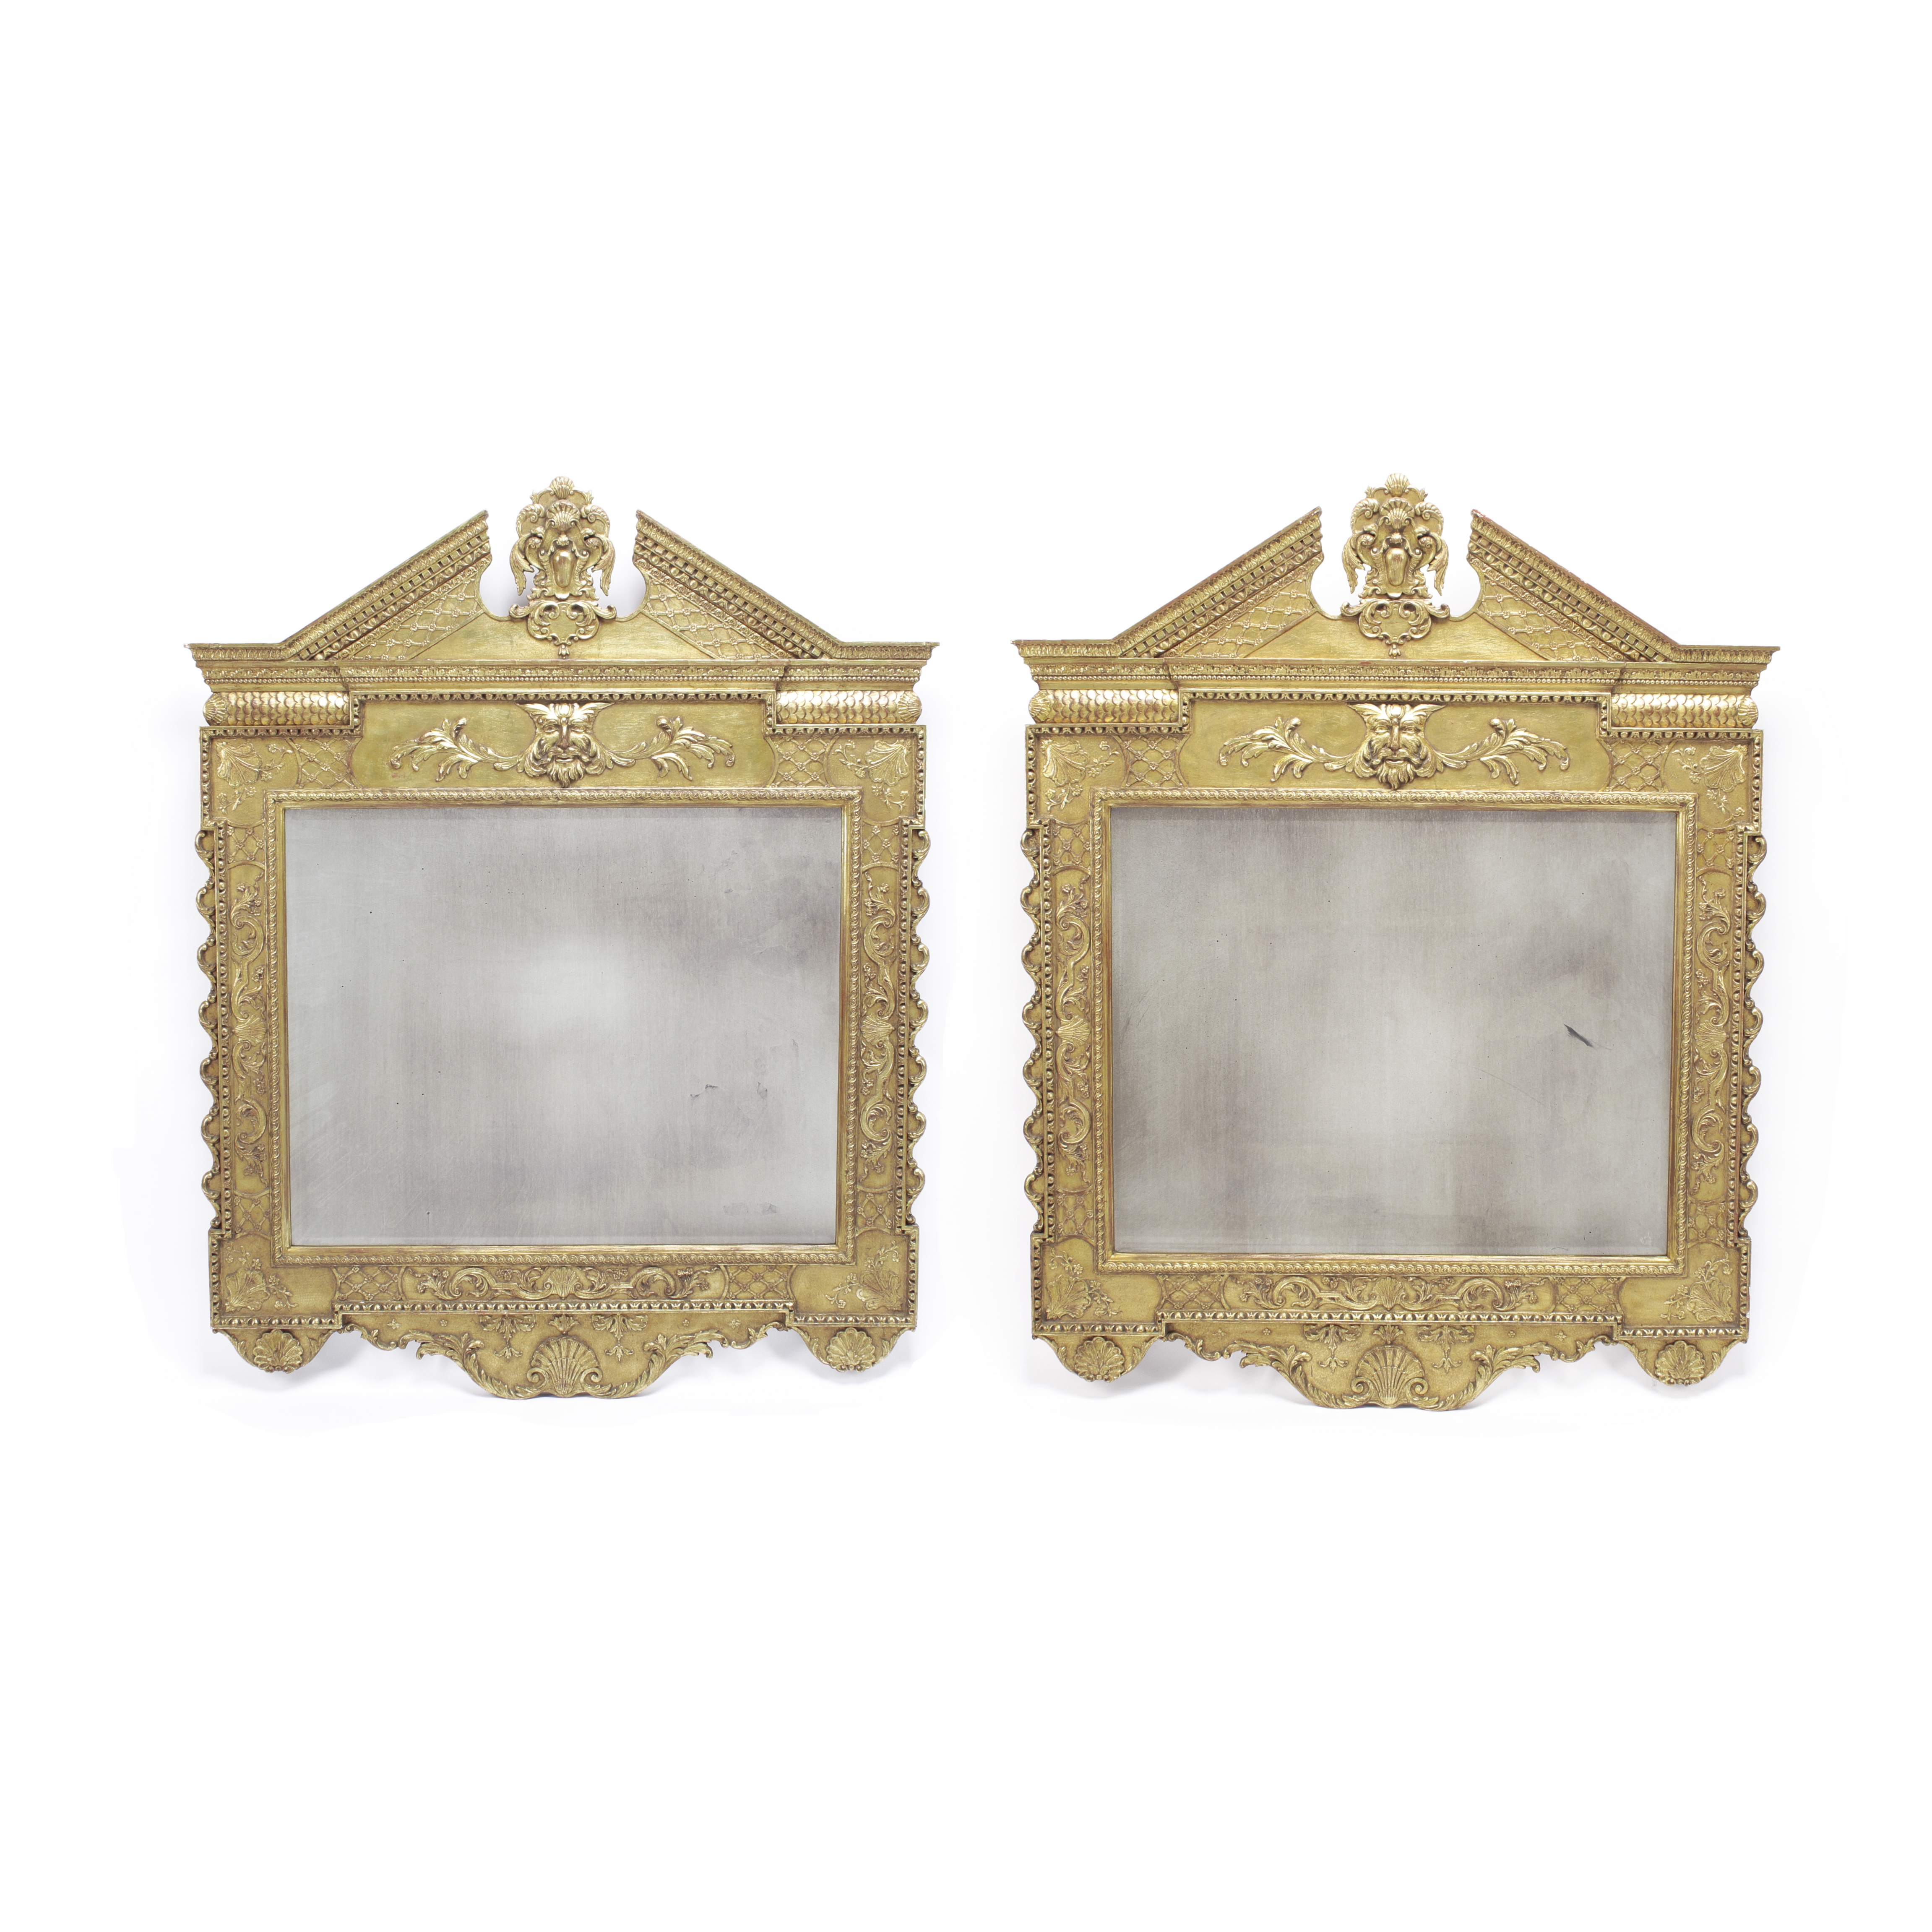 Lot 151 - A Pair of George II Style Giltwood Mirrors Late 19th/early 20th century